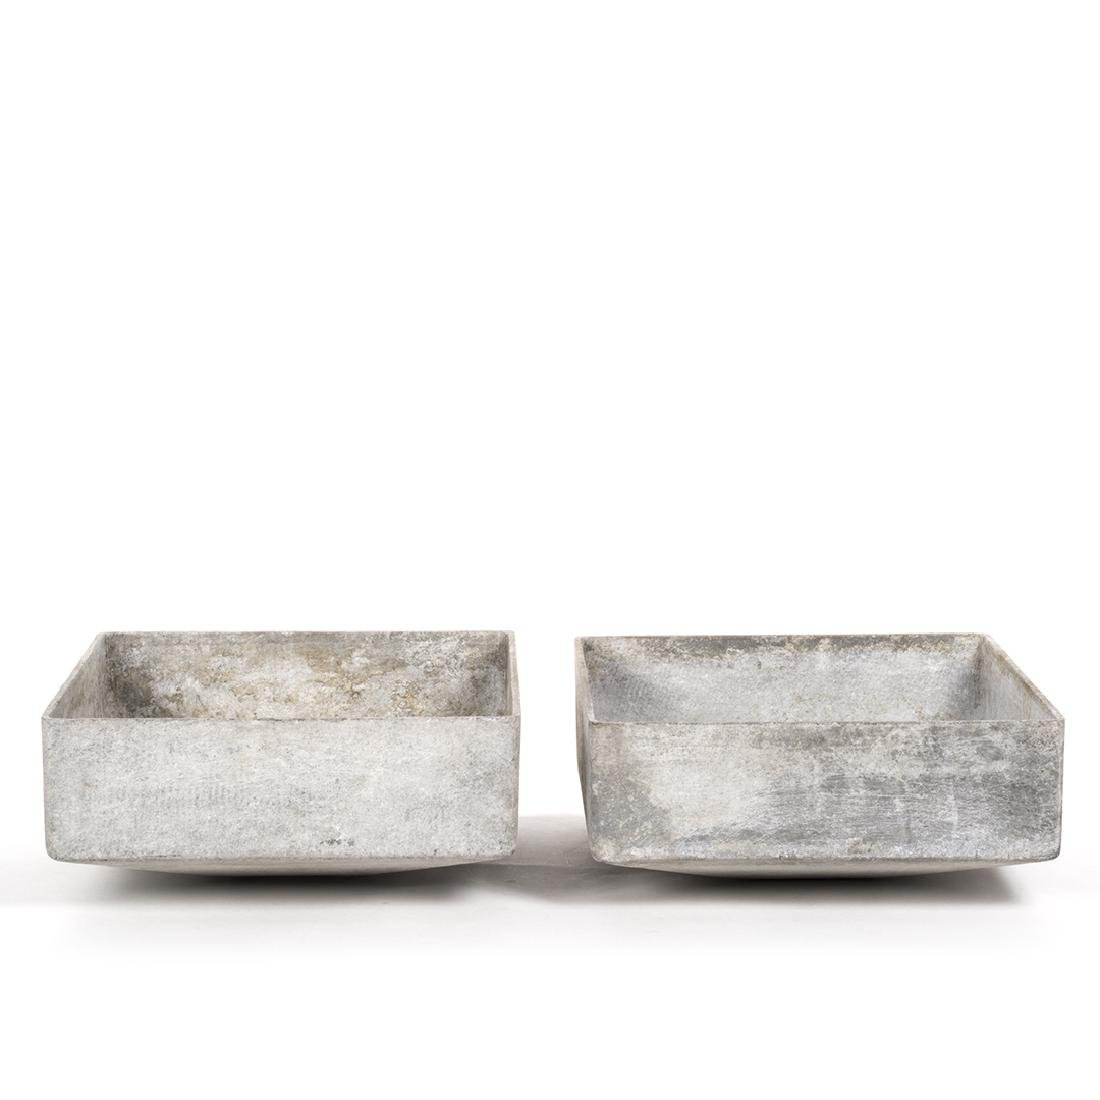 Willy Guhl Square Planters (2) - 2